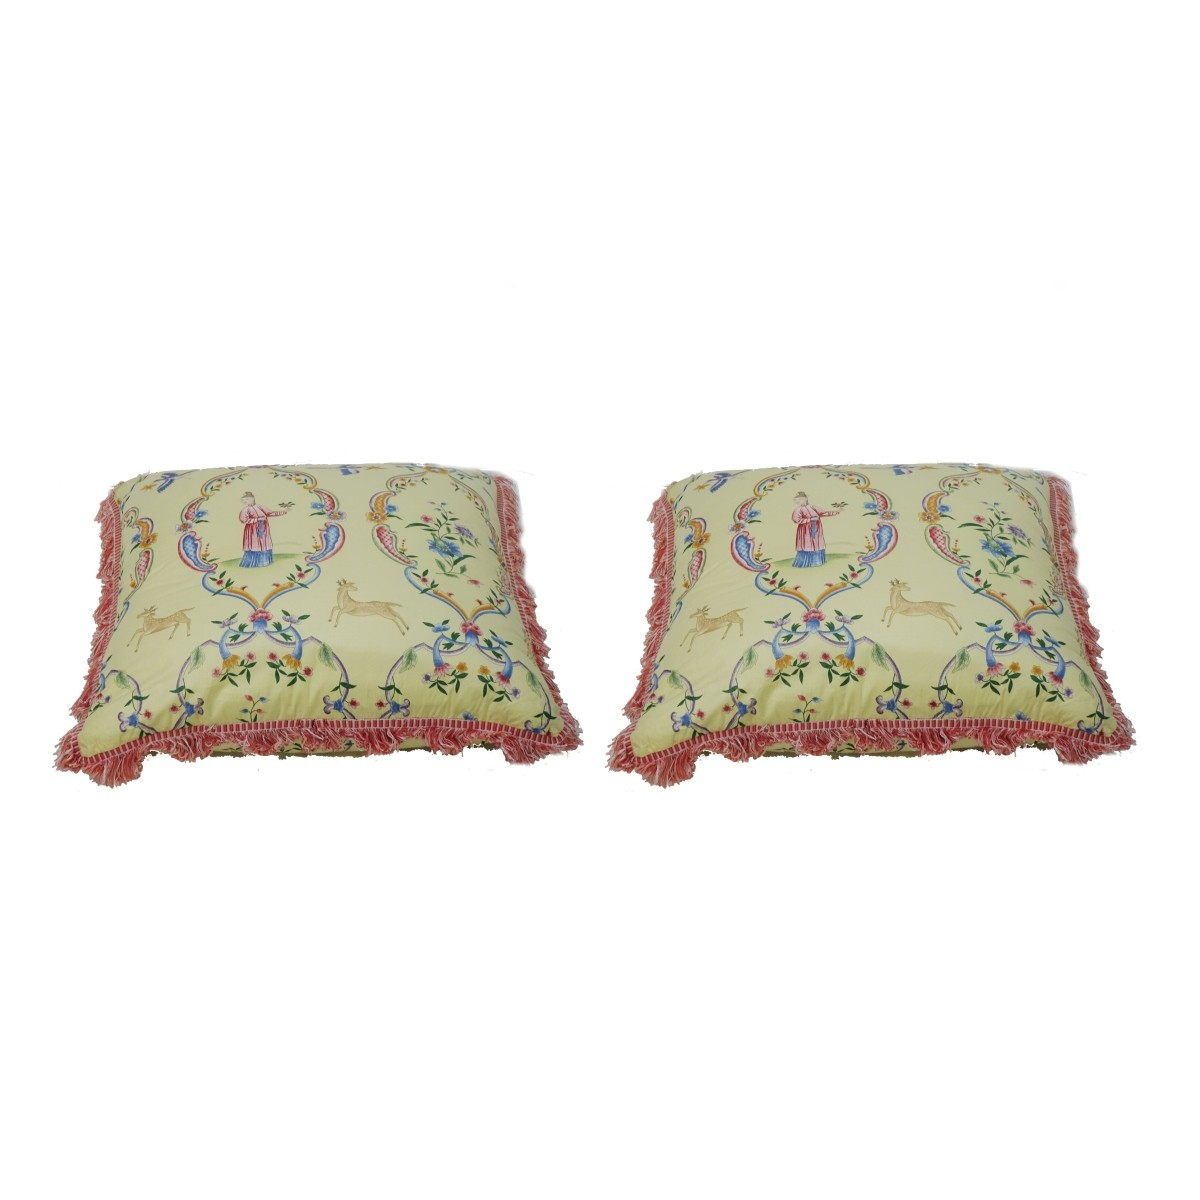 Chinoiserie Silk Decorative Pillows